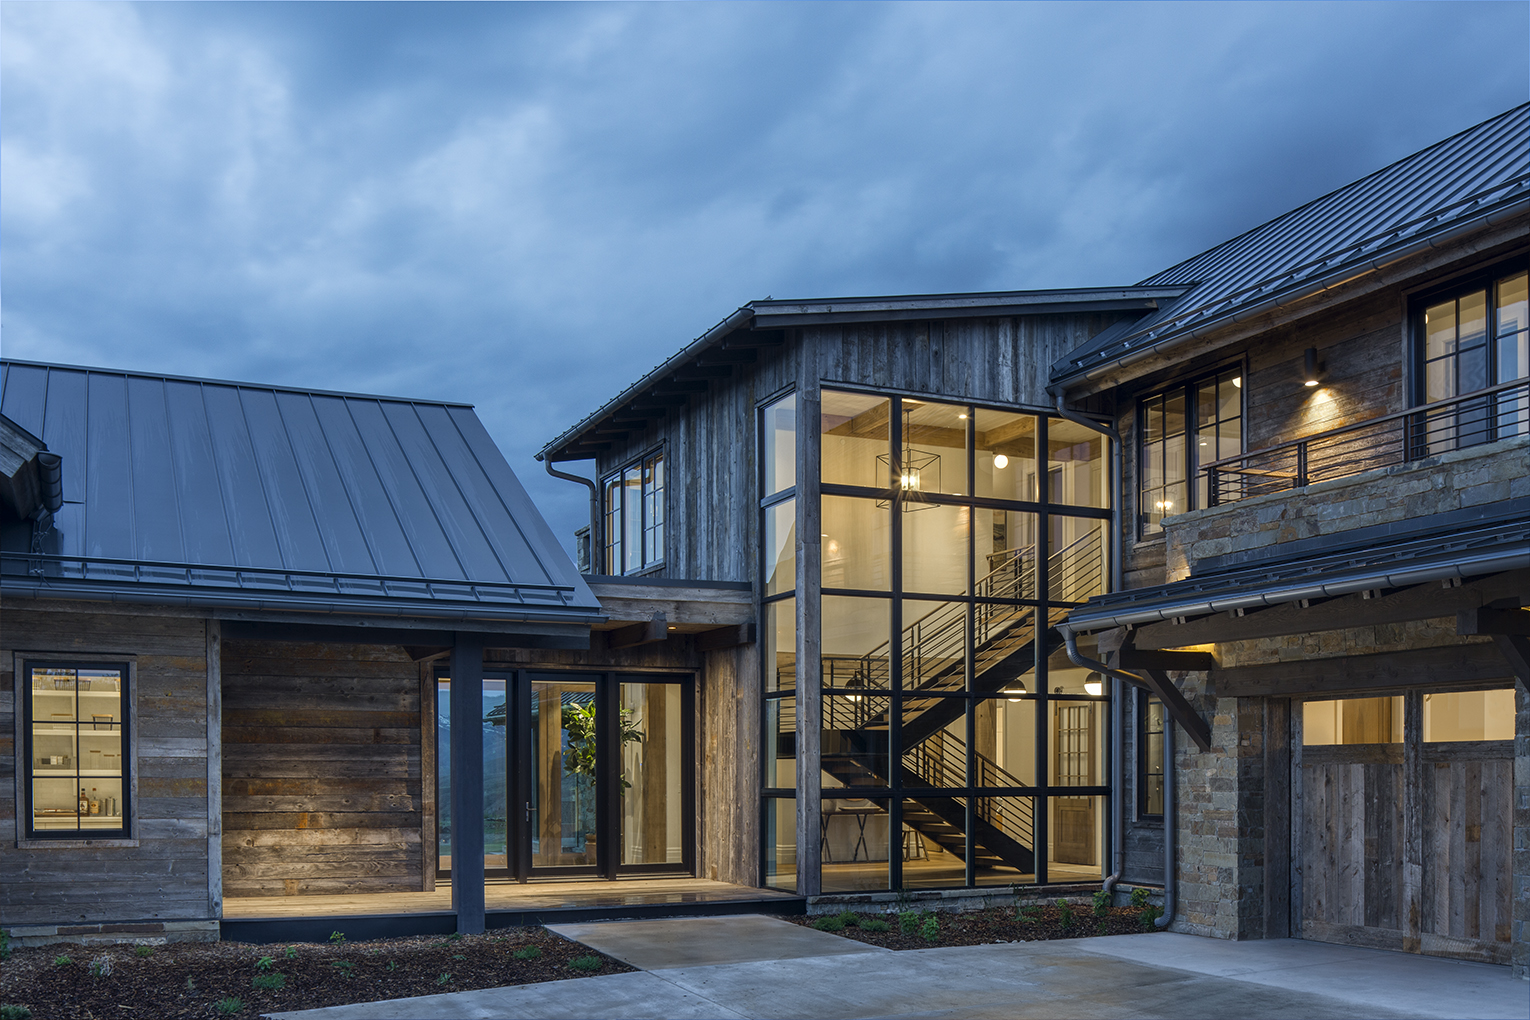 Exterior photograph of luxury residence at dusk near Park City, Utah. The photograph shows the main entrance with large glass windows that exposes the viewer to a beautiful stairwell  on the interior. The exterior of the home is of reclaimed lumber.